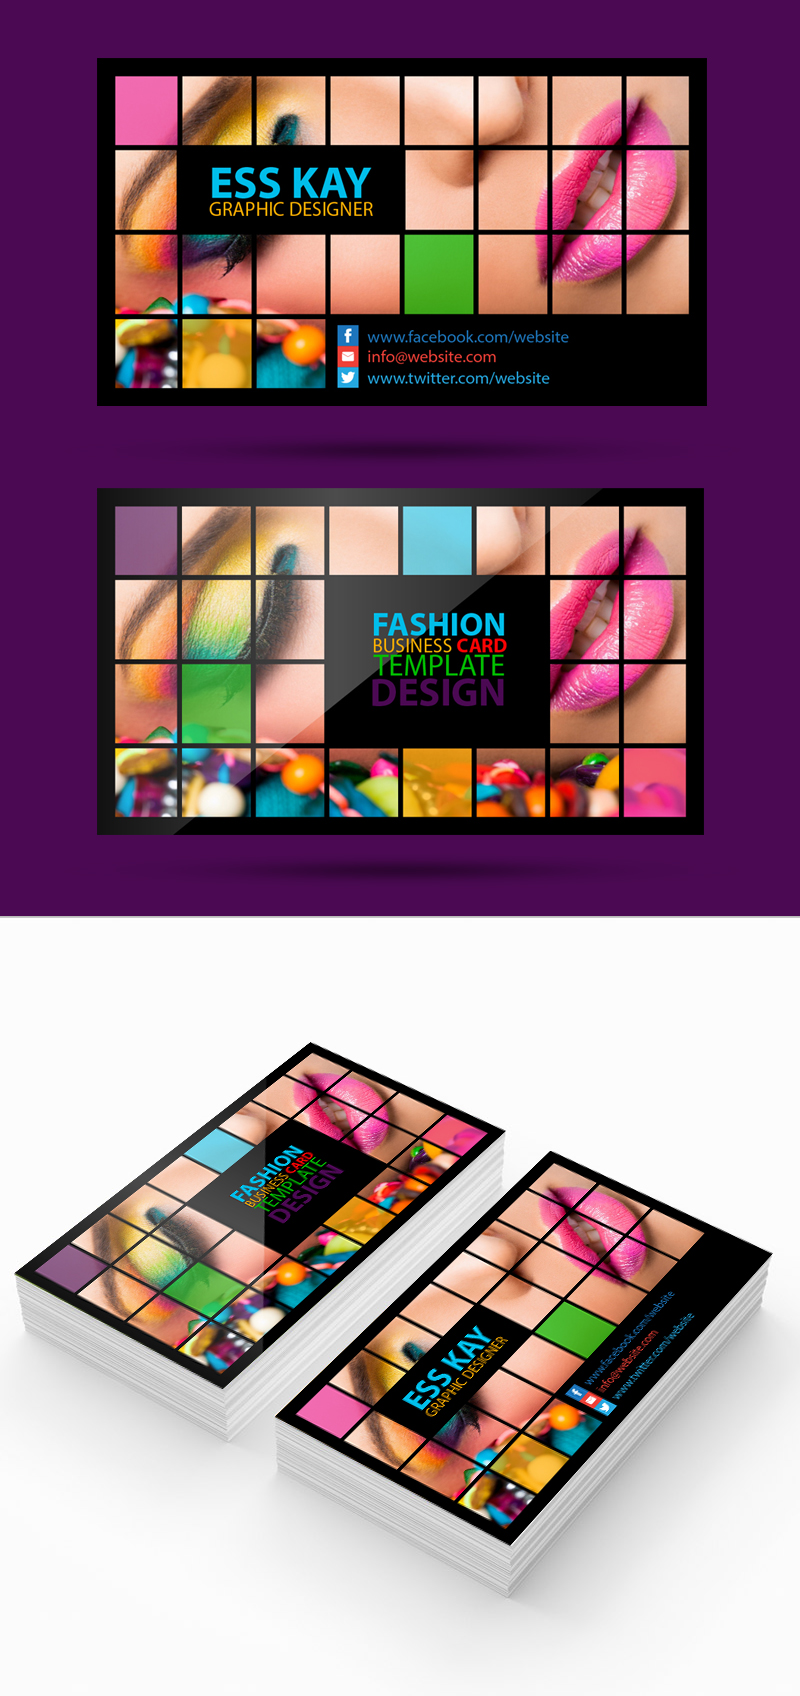 Free-Fashion-Business-Card-Template-Design